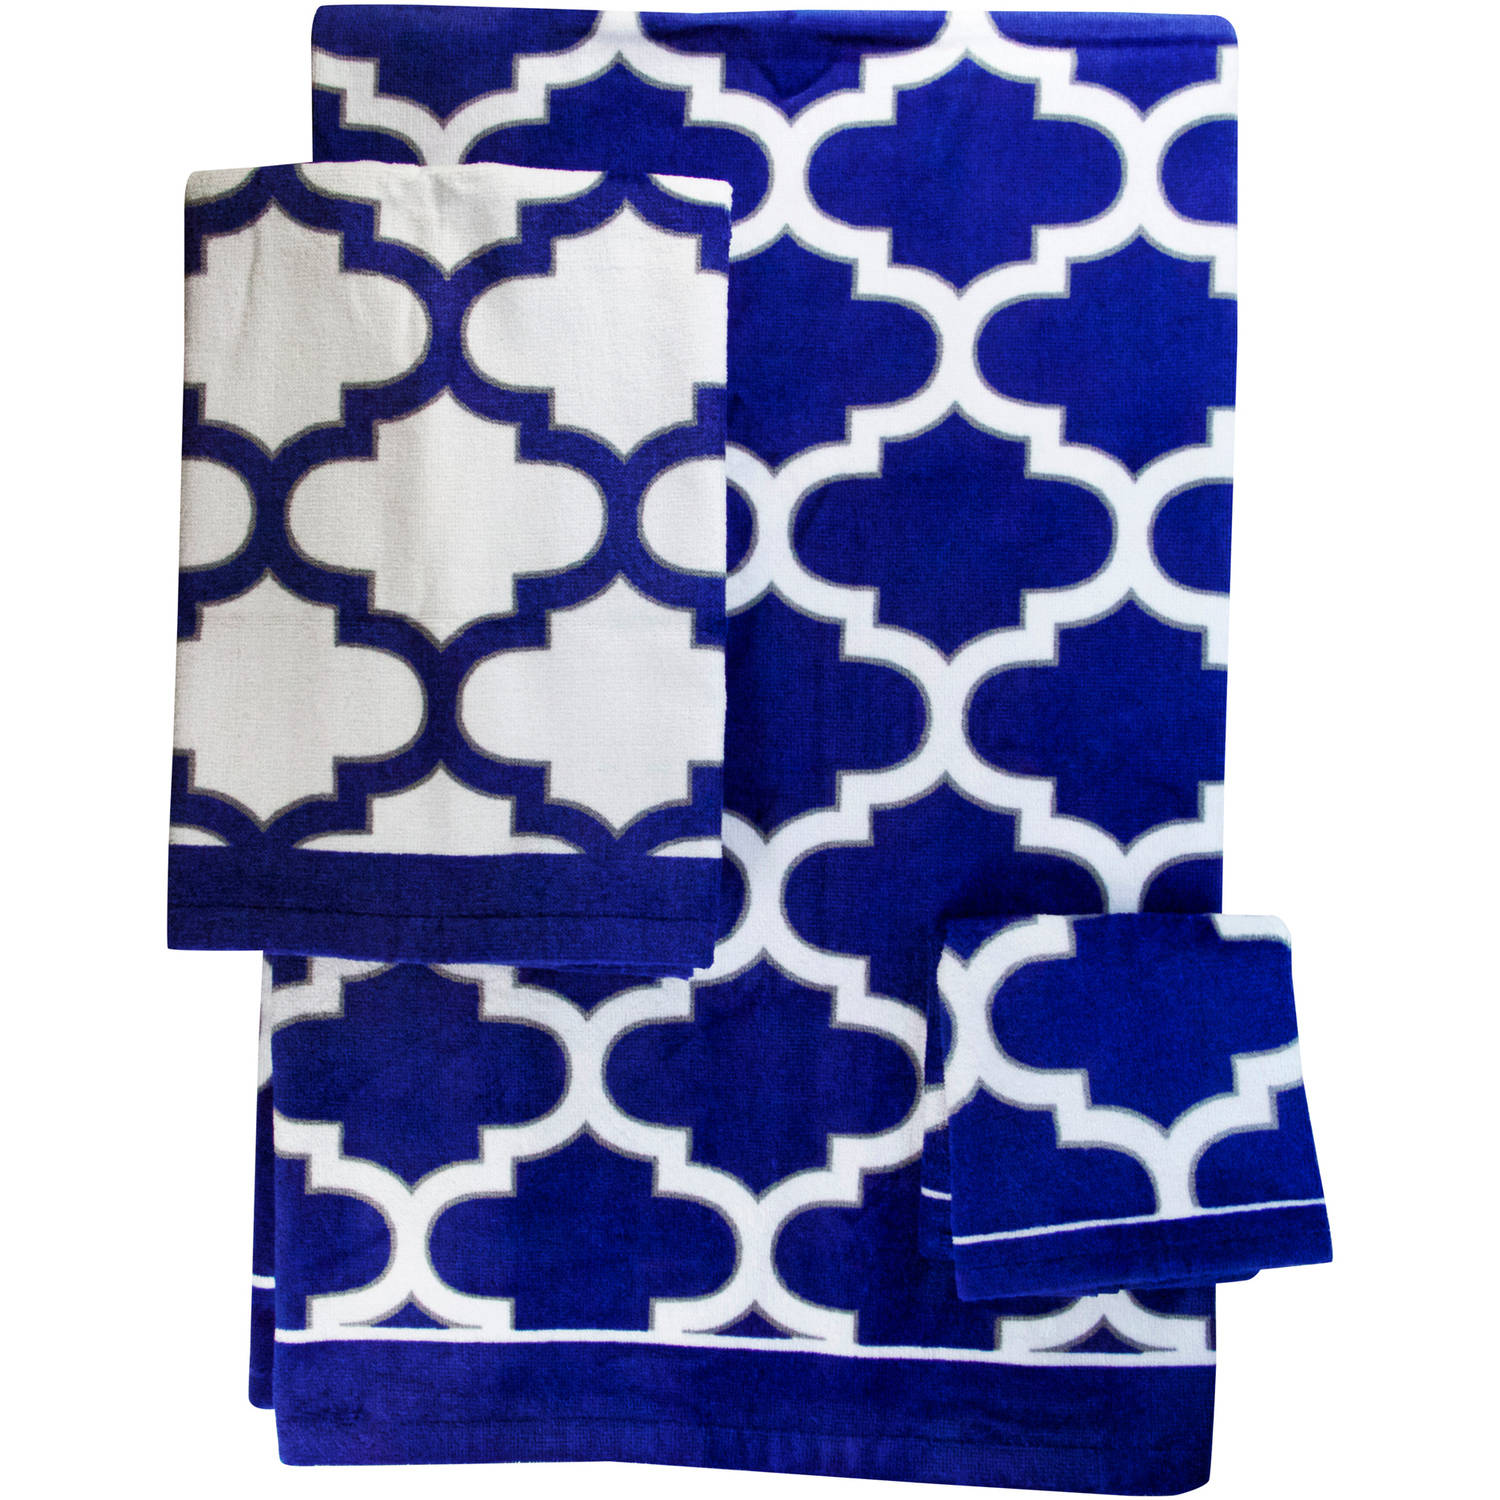 Mainstays Fretwork Navy/White Towel Towel Collection